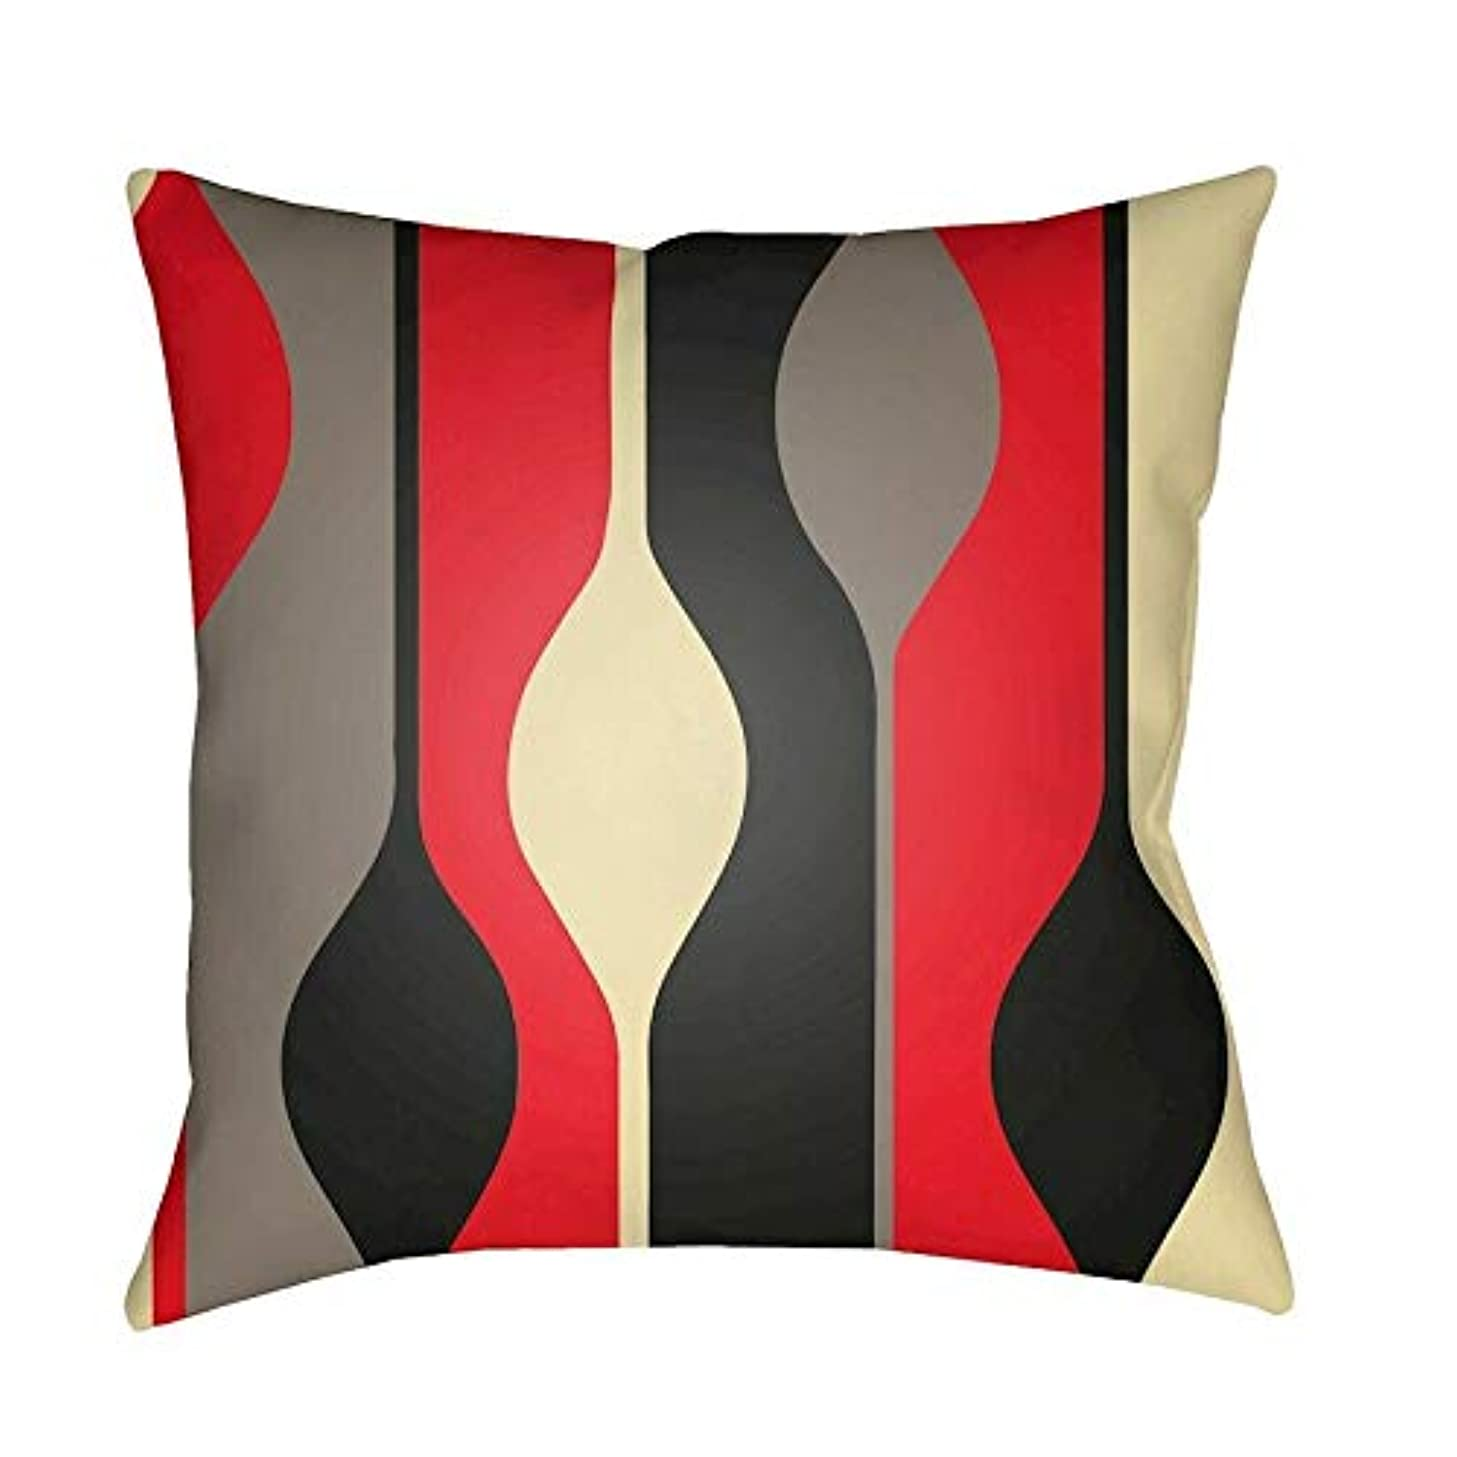 JumpingLight Modern Pillow, Red/Gray/Black Hypoallergenic, Deluxe Quality